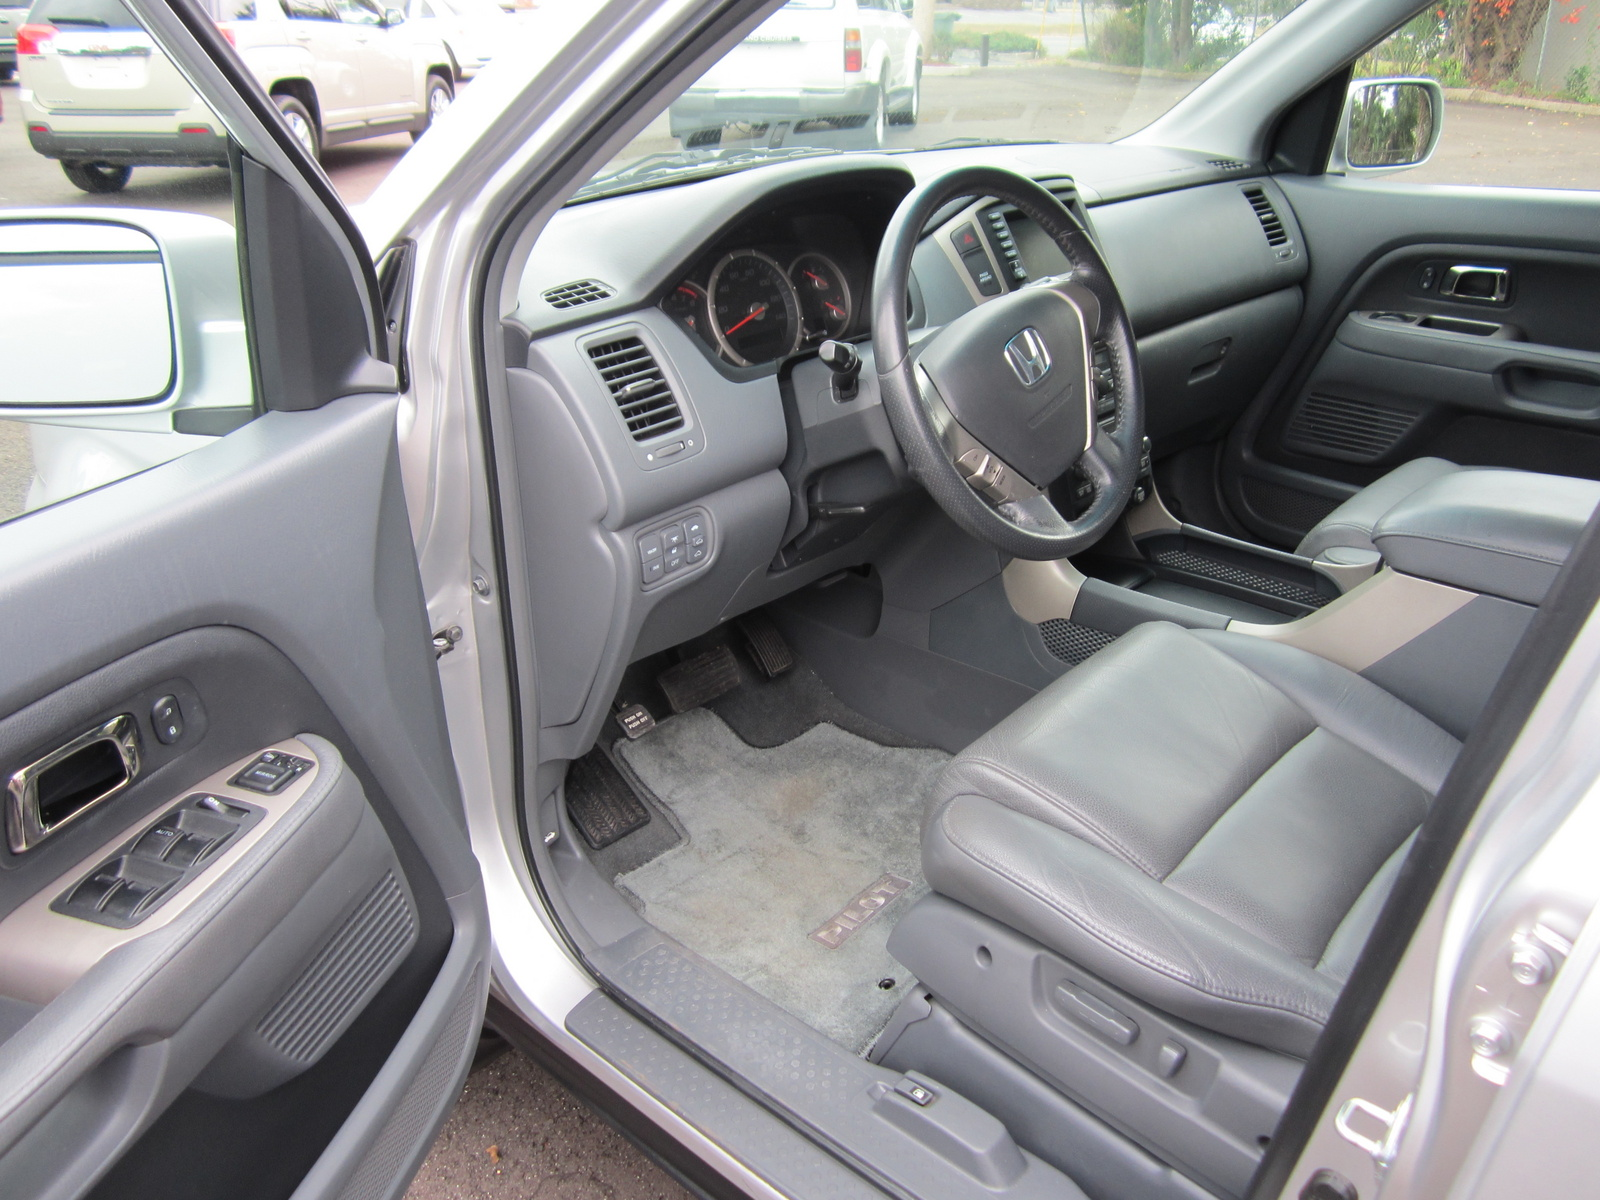 2007 honda pilot reviews page 4 reviewcarscom autos post. Black Bedroom Furniture Sets. Home Design Ideas